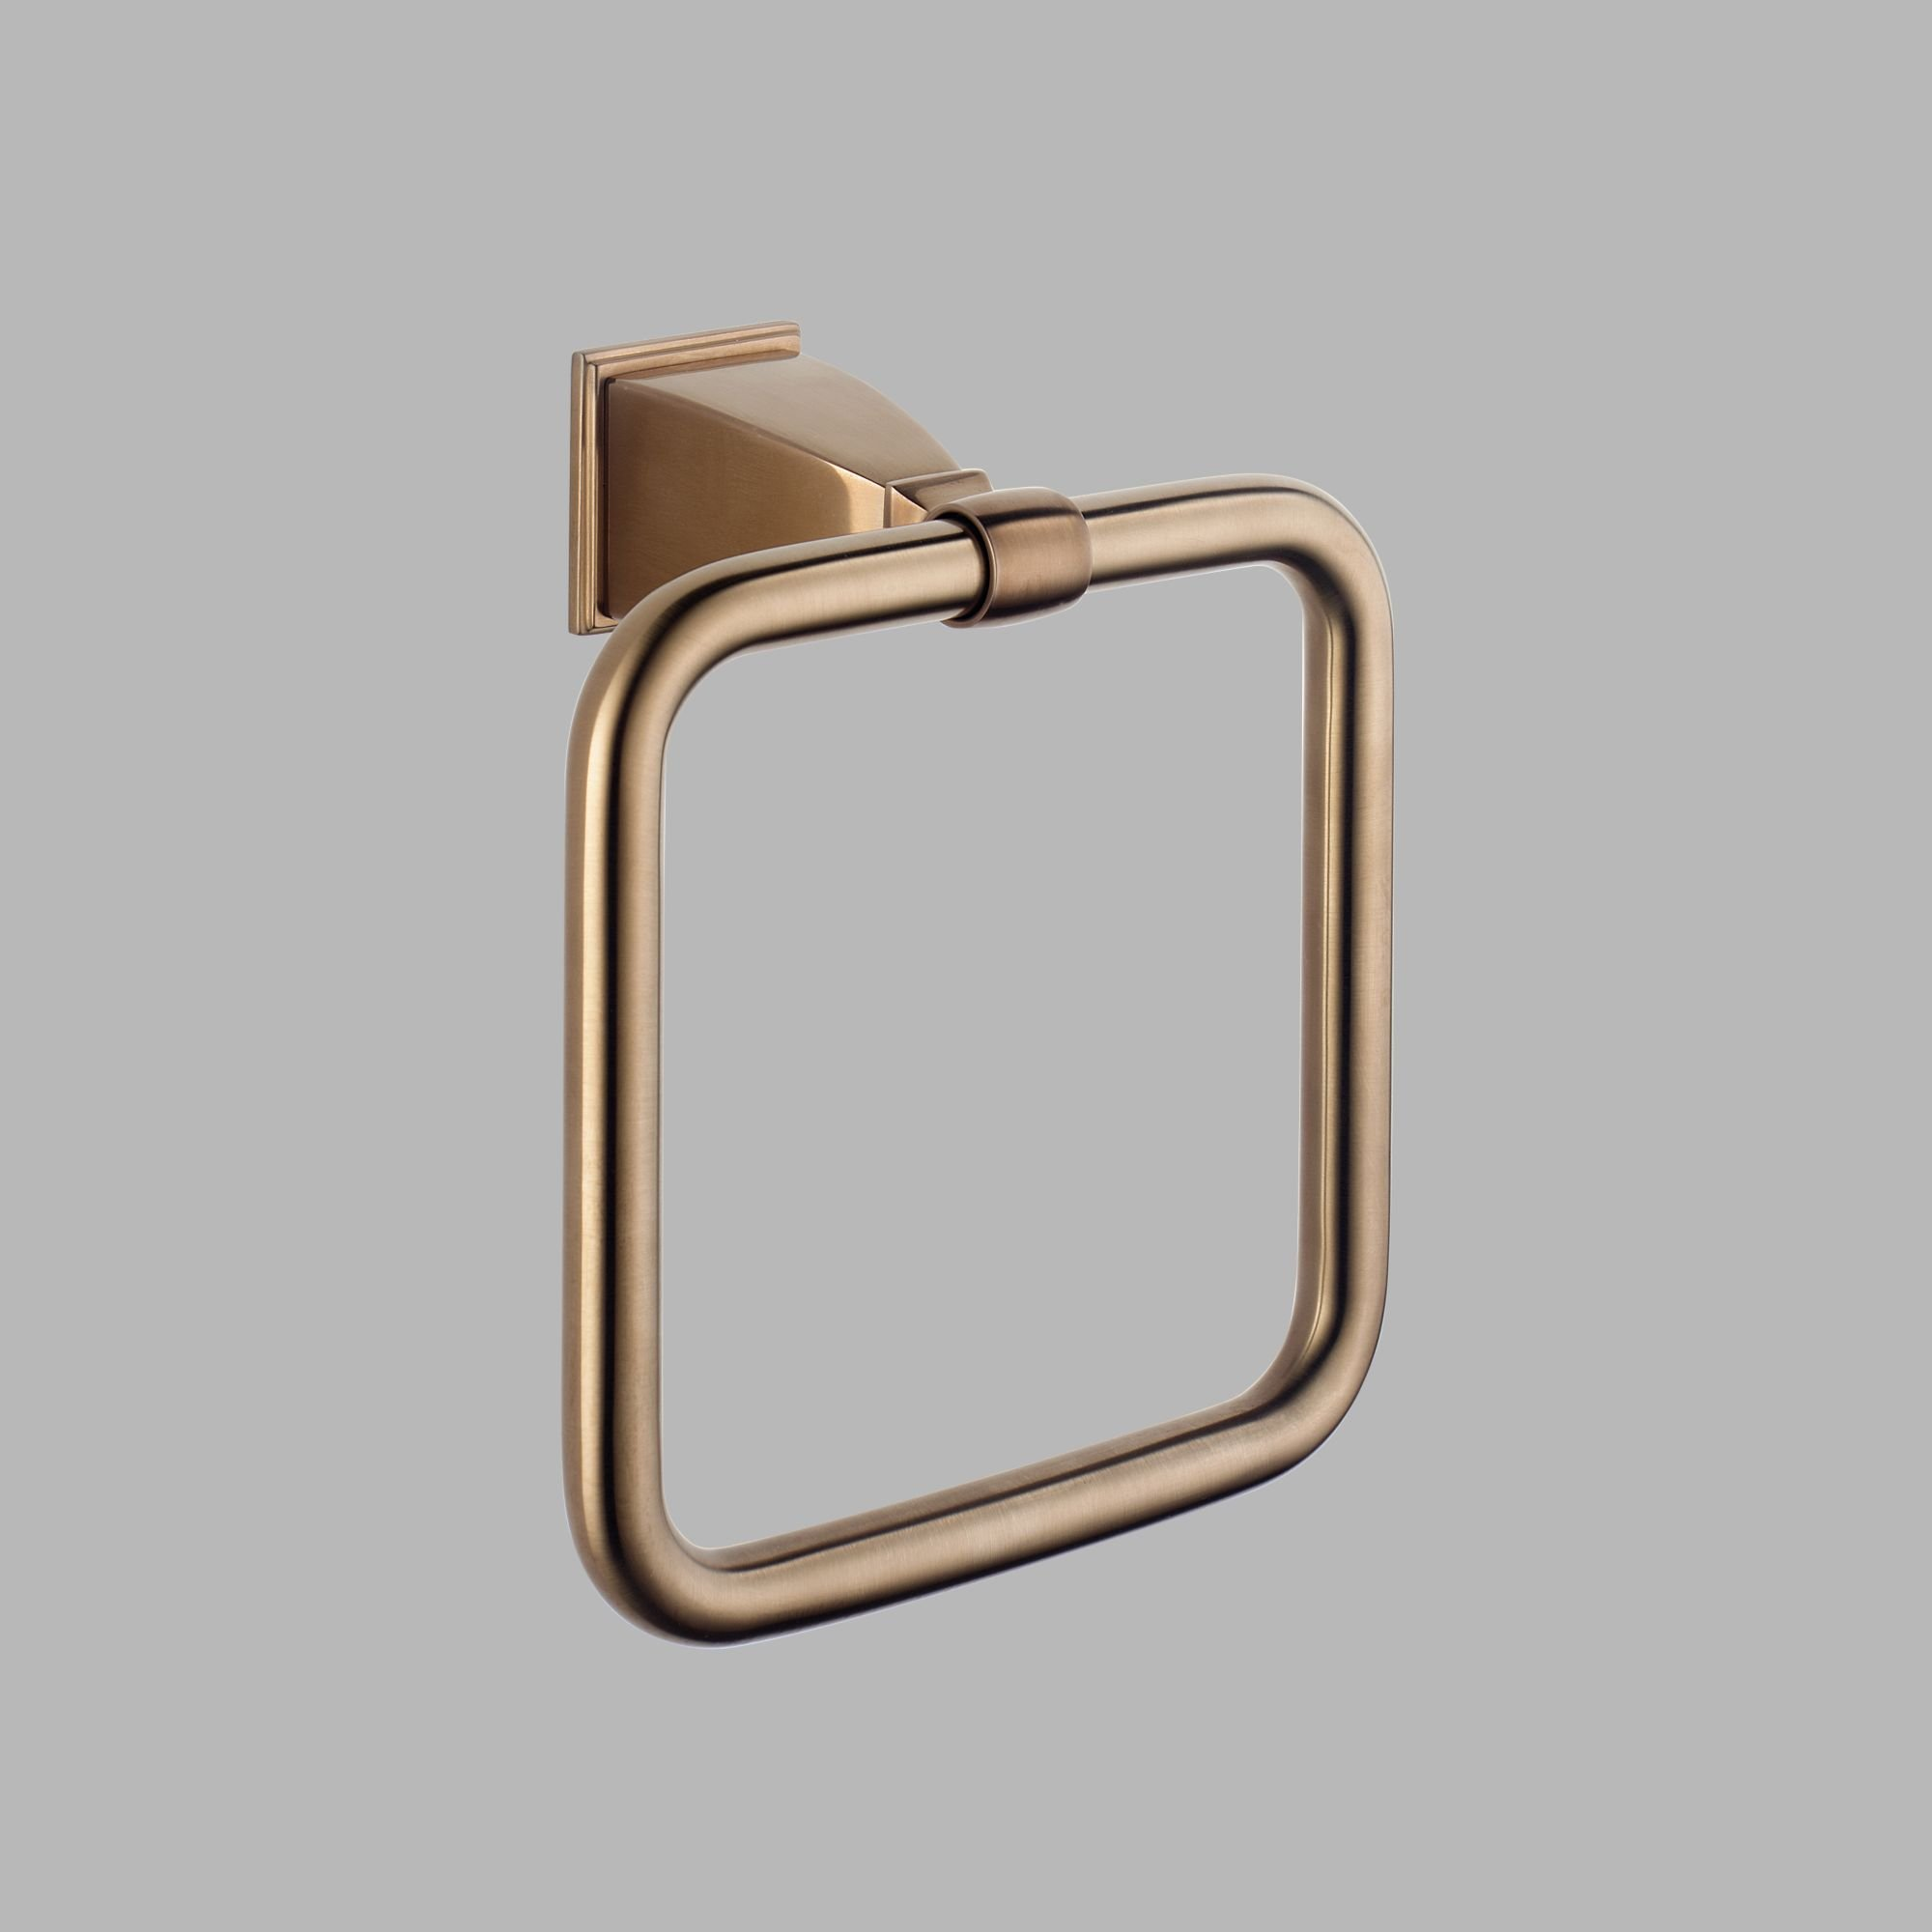 Brizo 69846-BZ - Vesi: Towel Ring - Brushed Bronze Brilliance Finish by Brizo